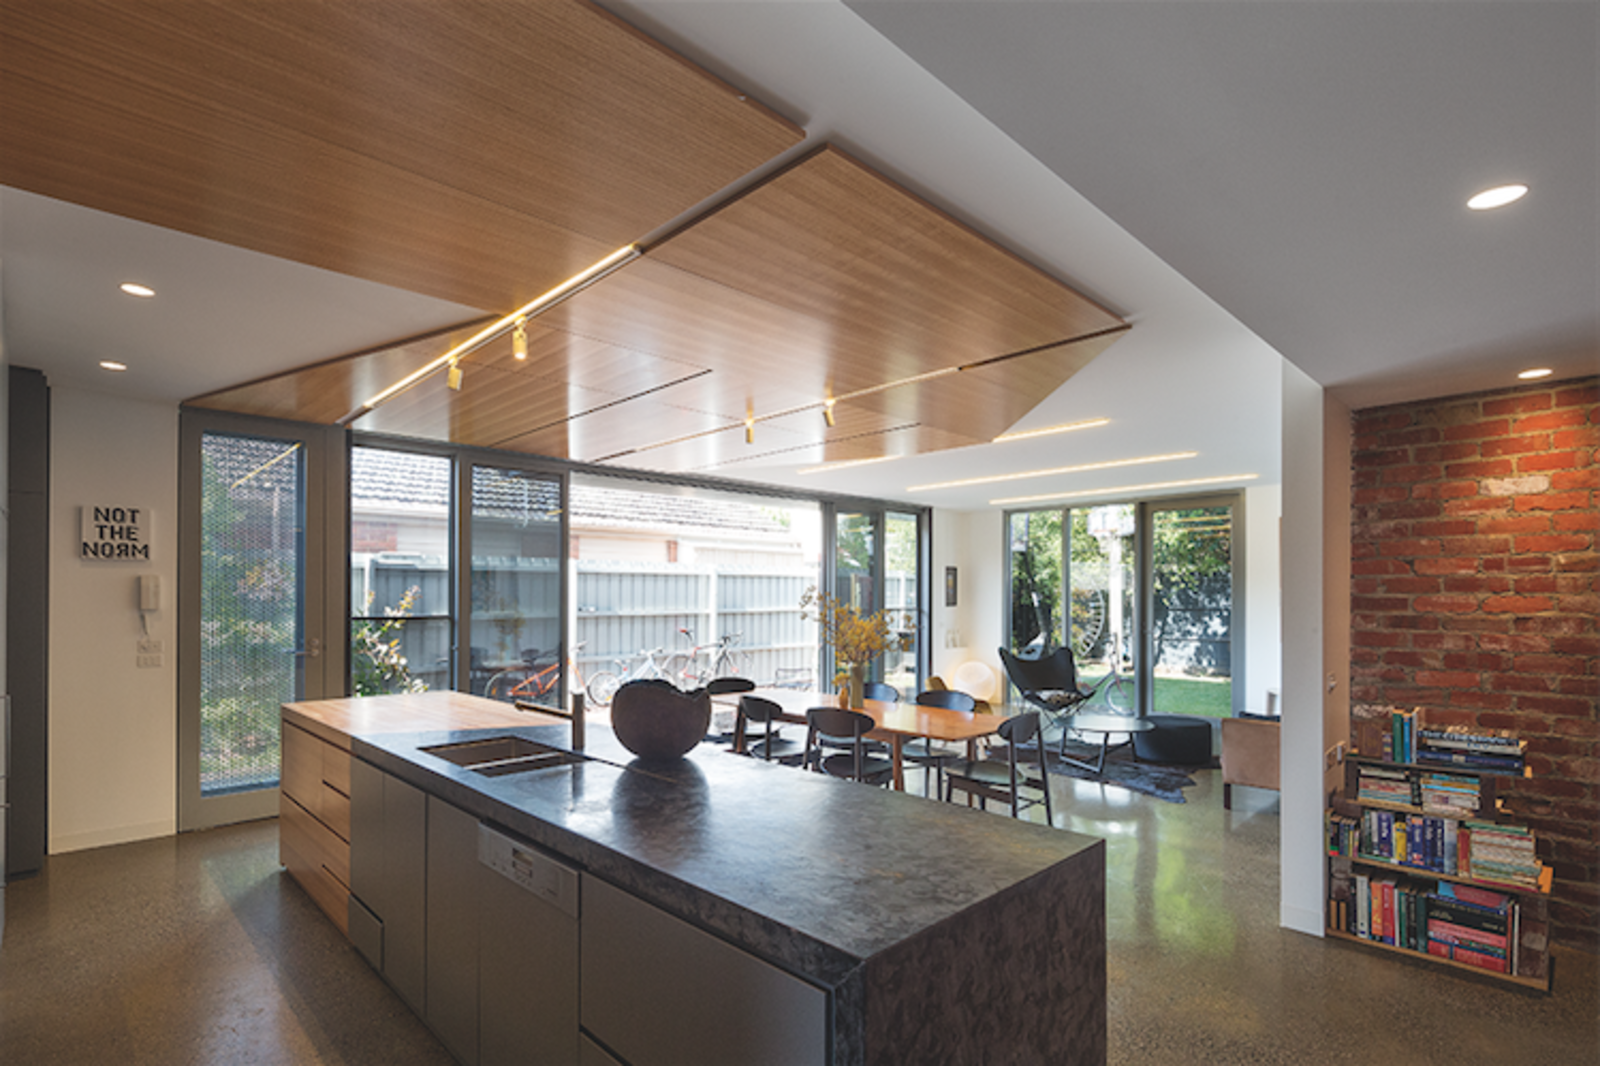 Windows and sliding glass doors extend the dining room space into the enclosed garden and maximize natural light inside.  Photo 3 of 7 in Angular Australian House Fits a Family's Active Lifestyle